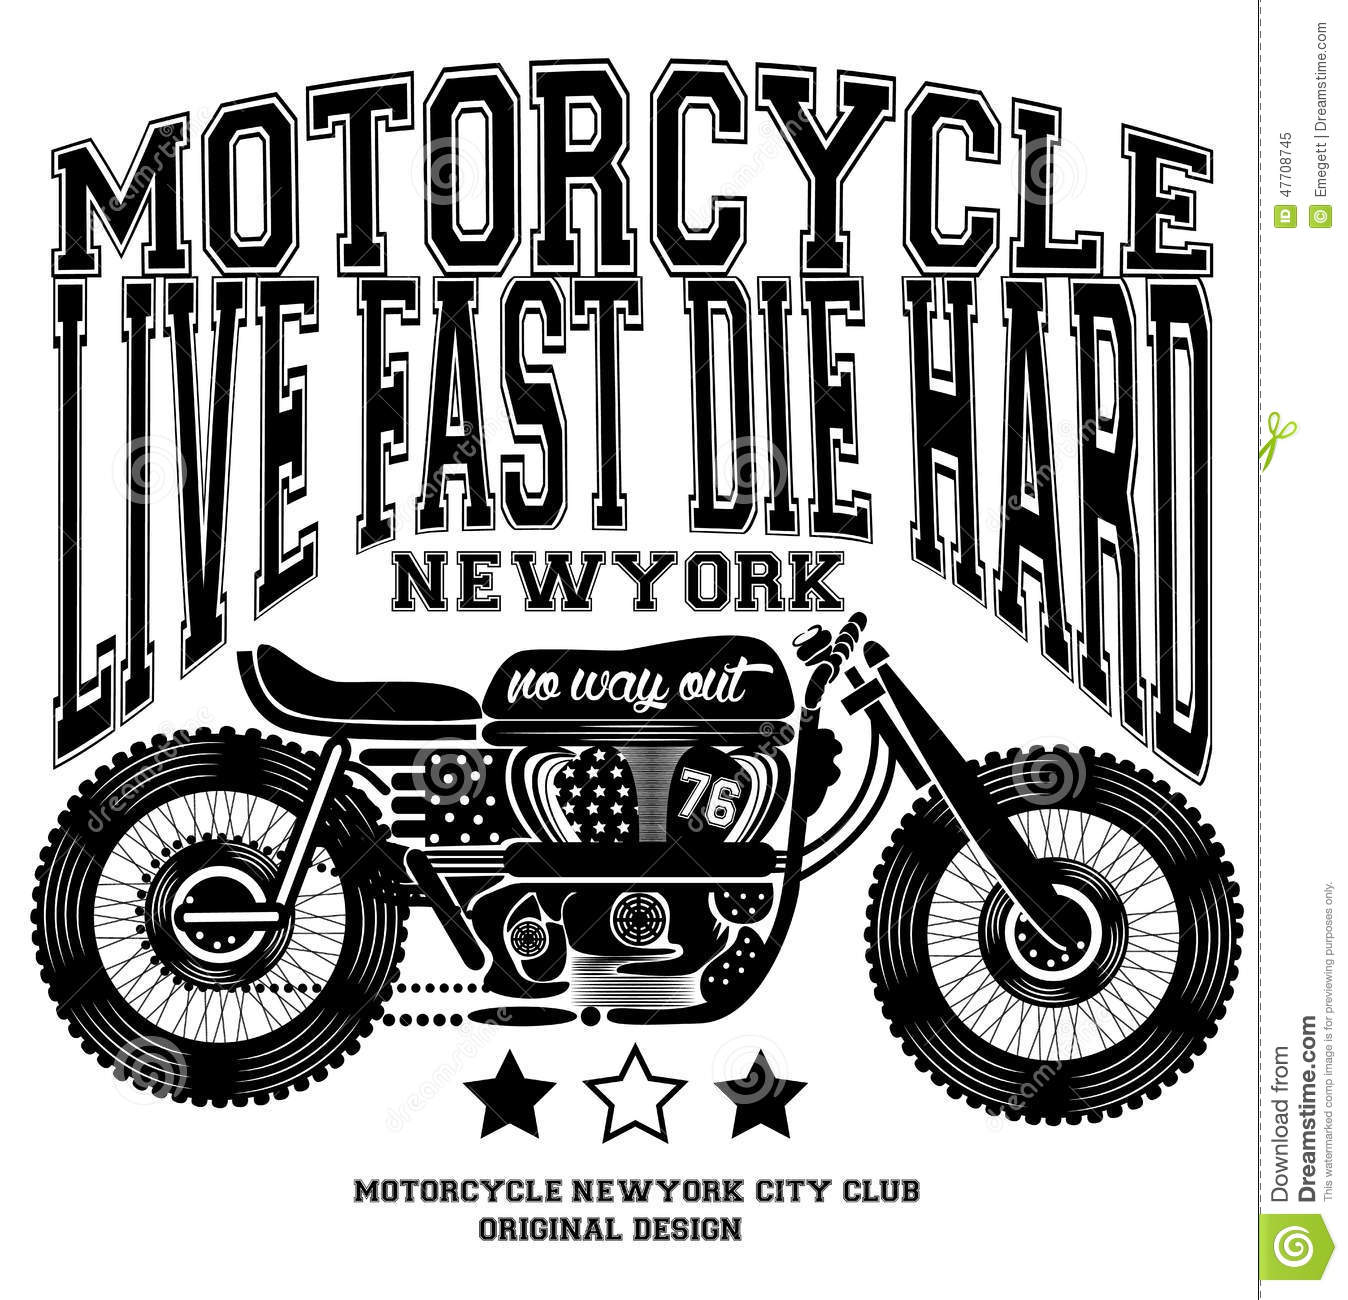 Big W Business Shirts Motorcycle Vintage New York T Shirt Graphic Design Stock